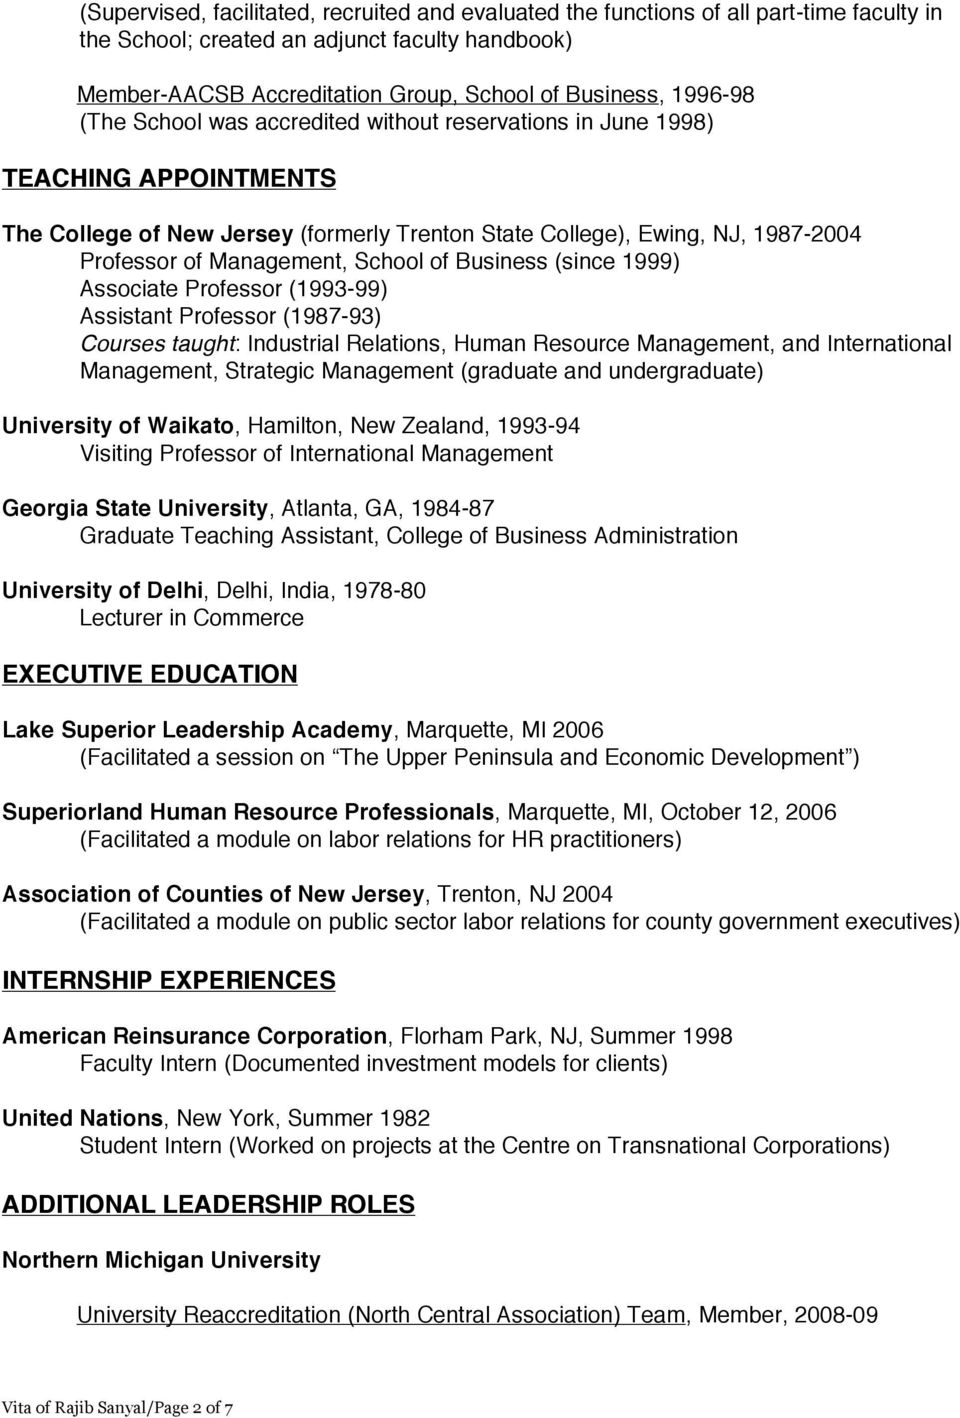 School of Business (since 1999) Associate Professor (1993-99) Assistant Professor (1987-93) Courses taught: Industrial Relations, Human Resource Management, and International Management, Strategic